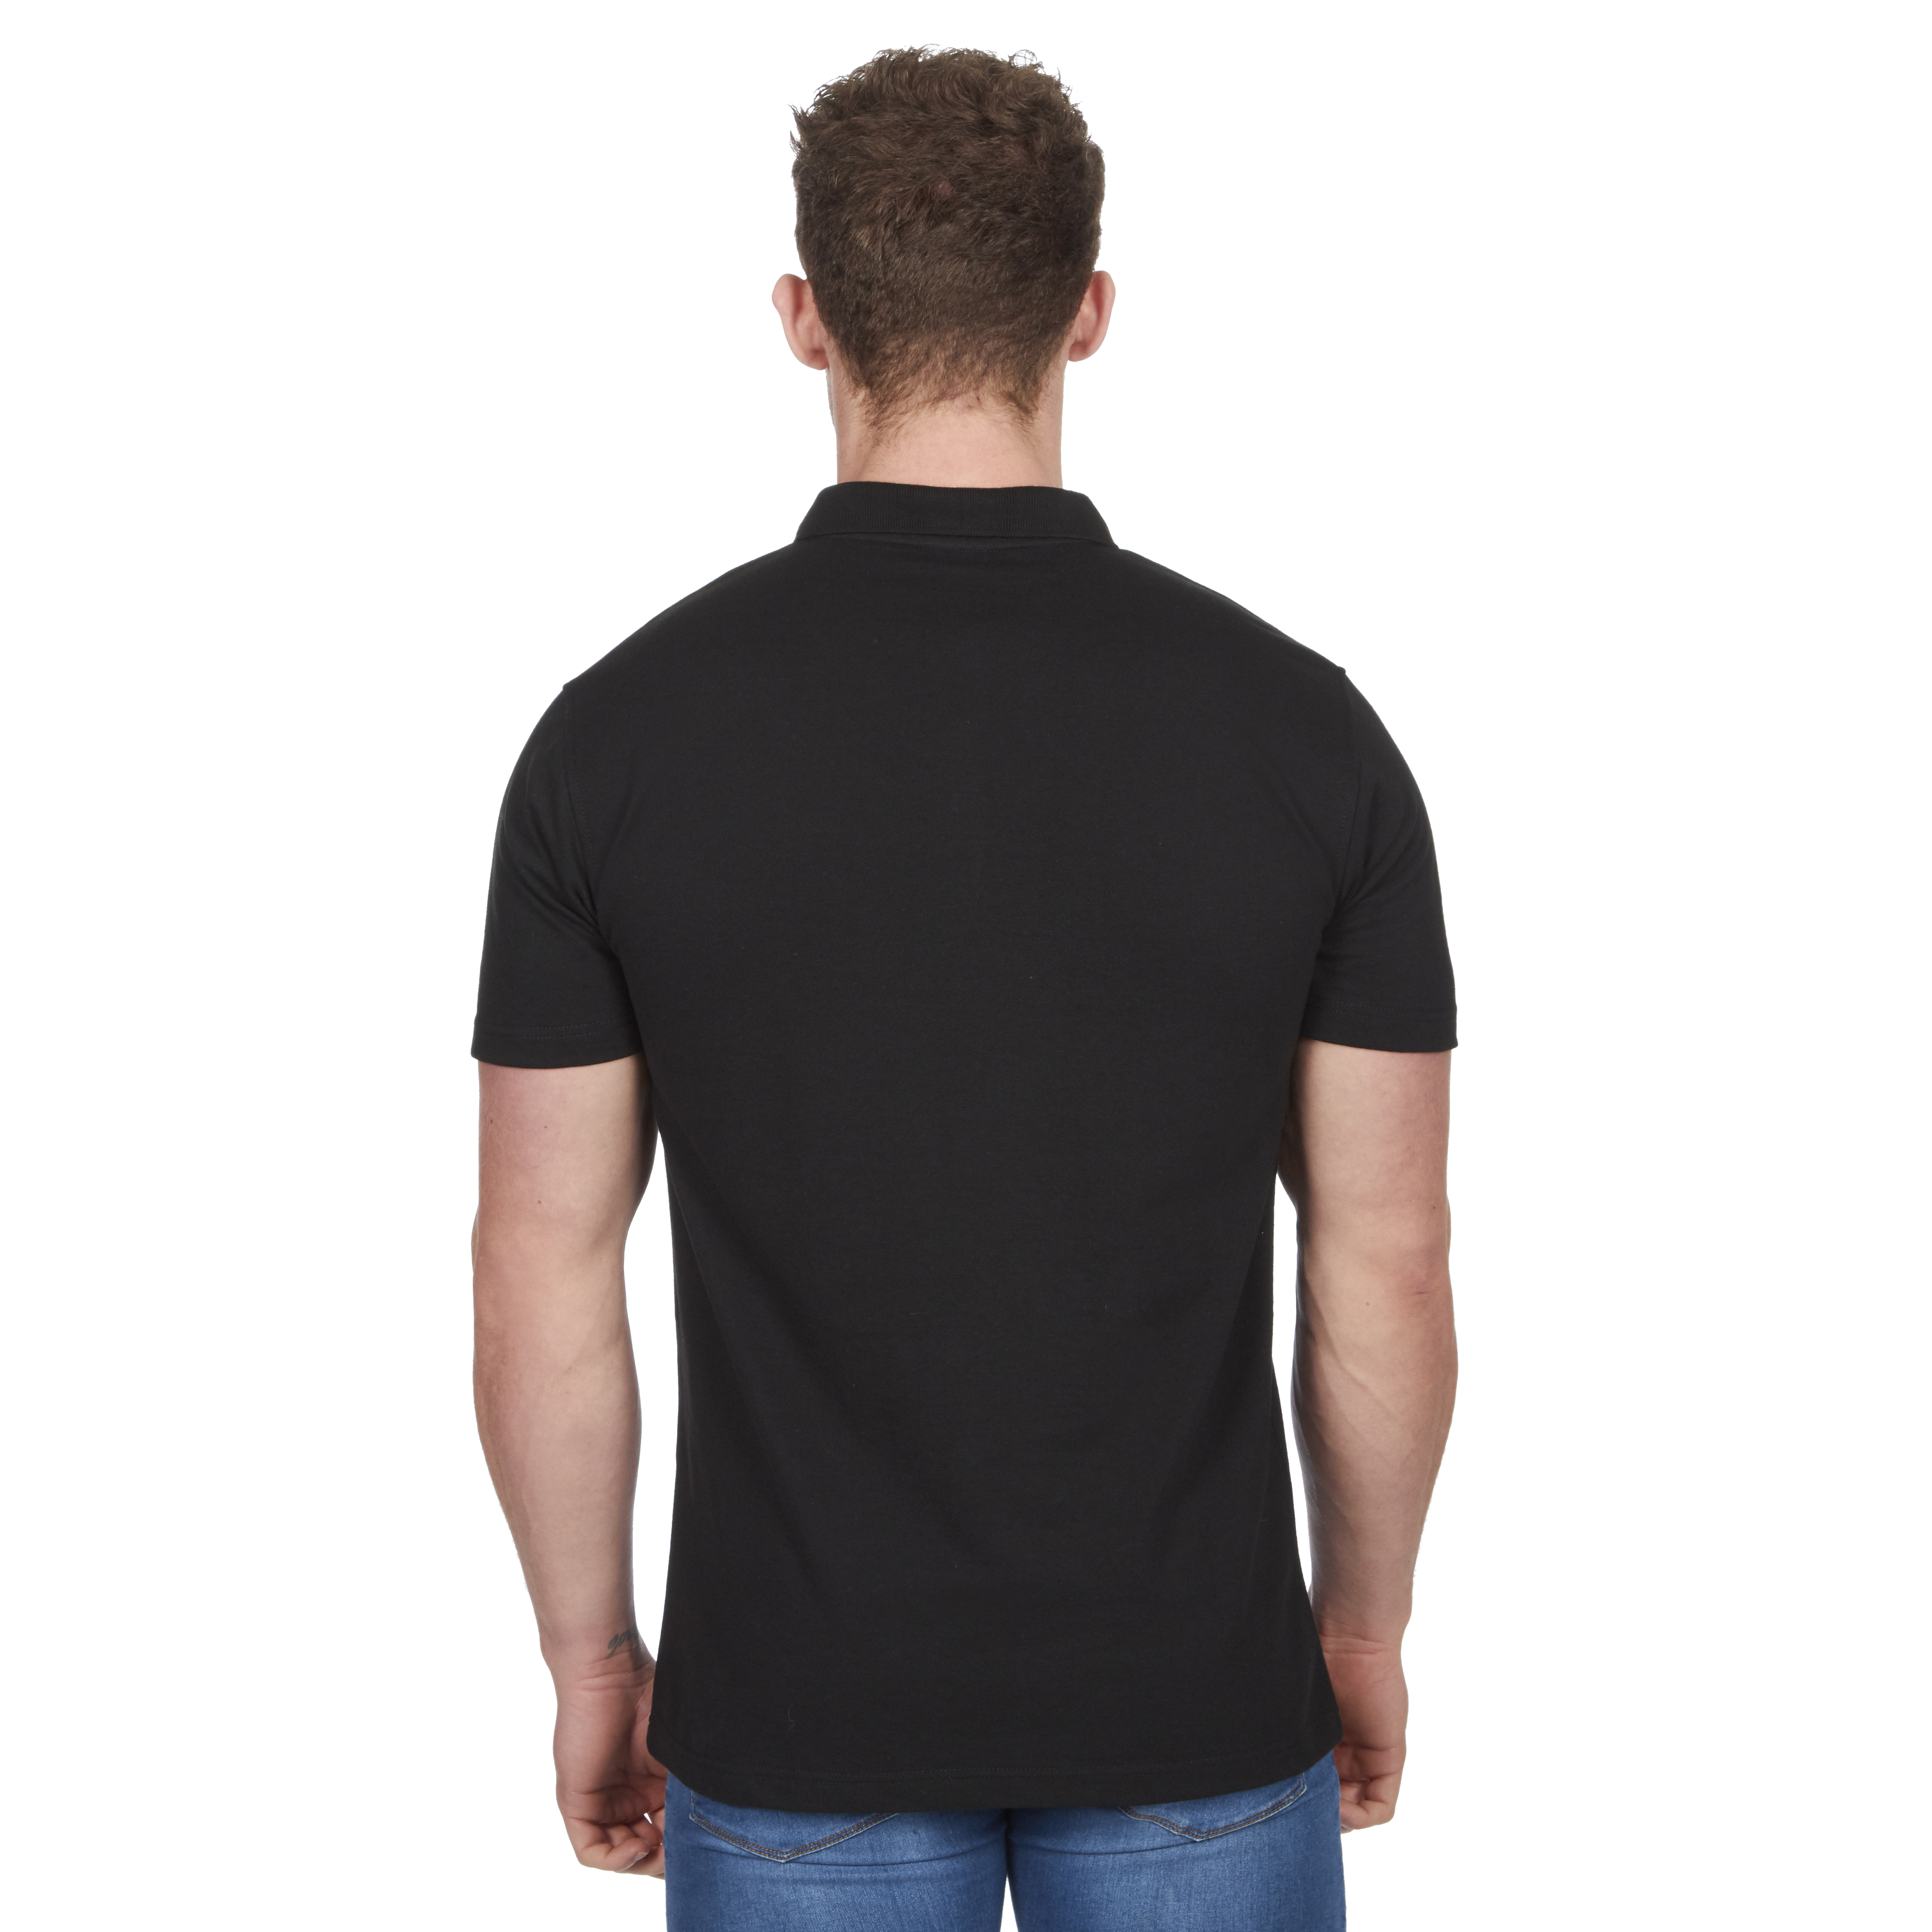 Mens-Classic-Polo-Top-Plus-Size-T-Shirt-Plain-Shirt-Big-And-Tall-Short-Sleeve thumbnail 4